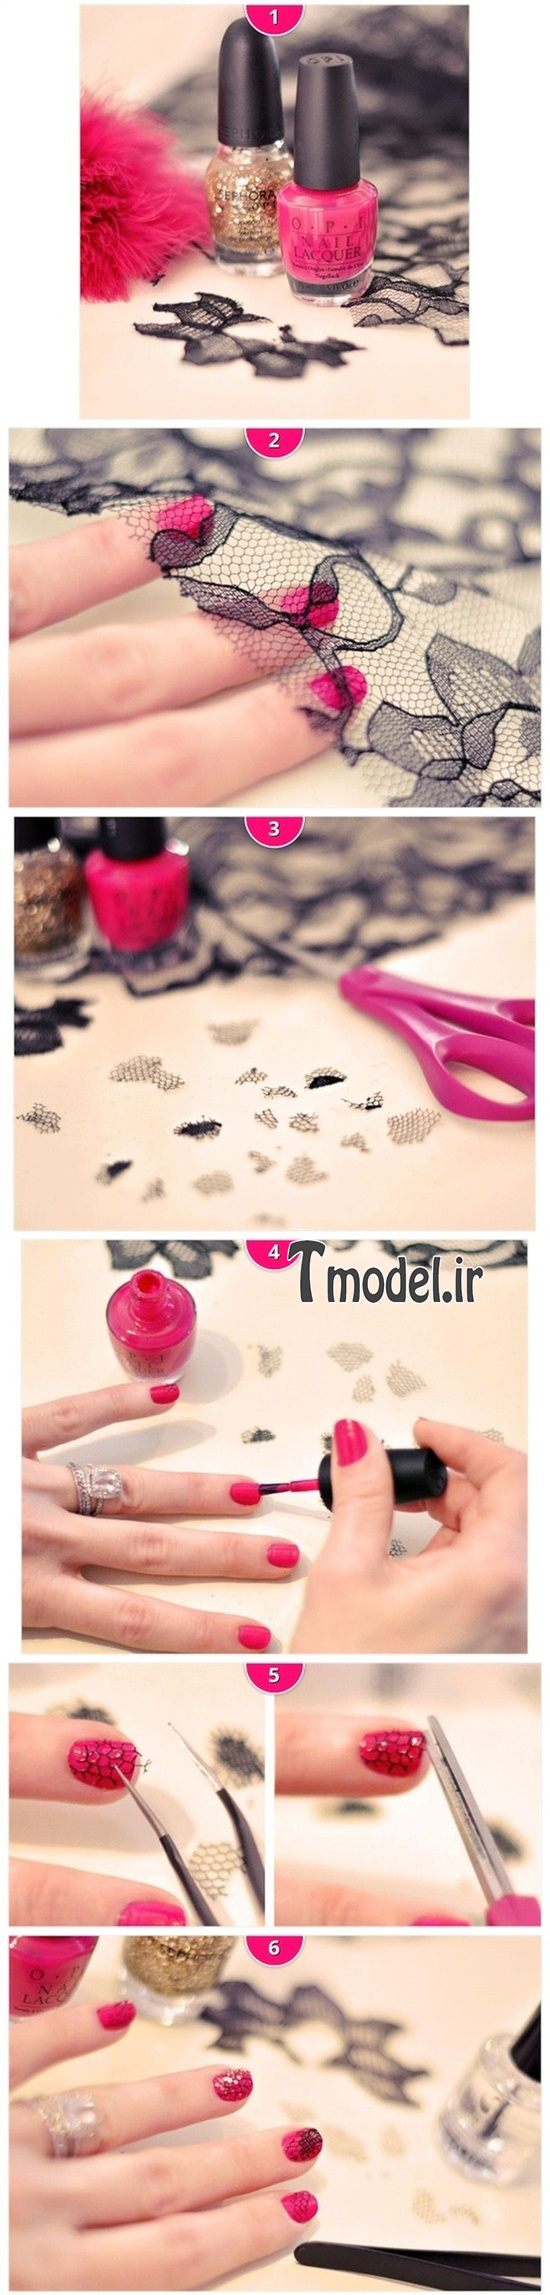 lemoo.ir-1-tutorial-makeup-Nail-1